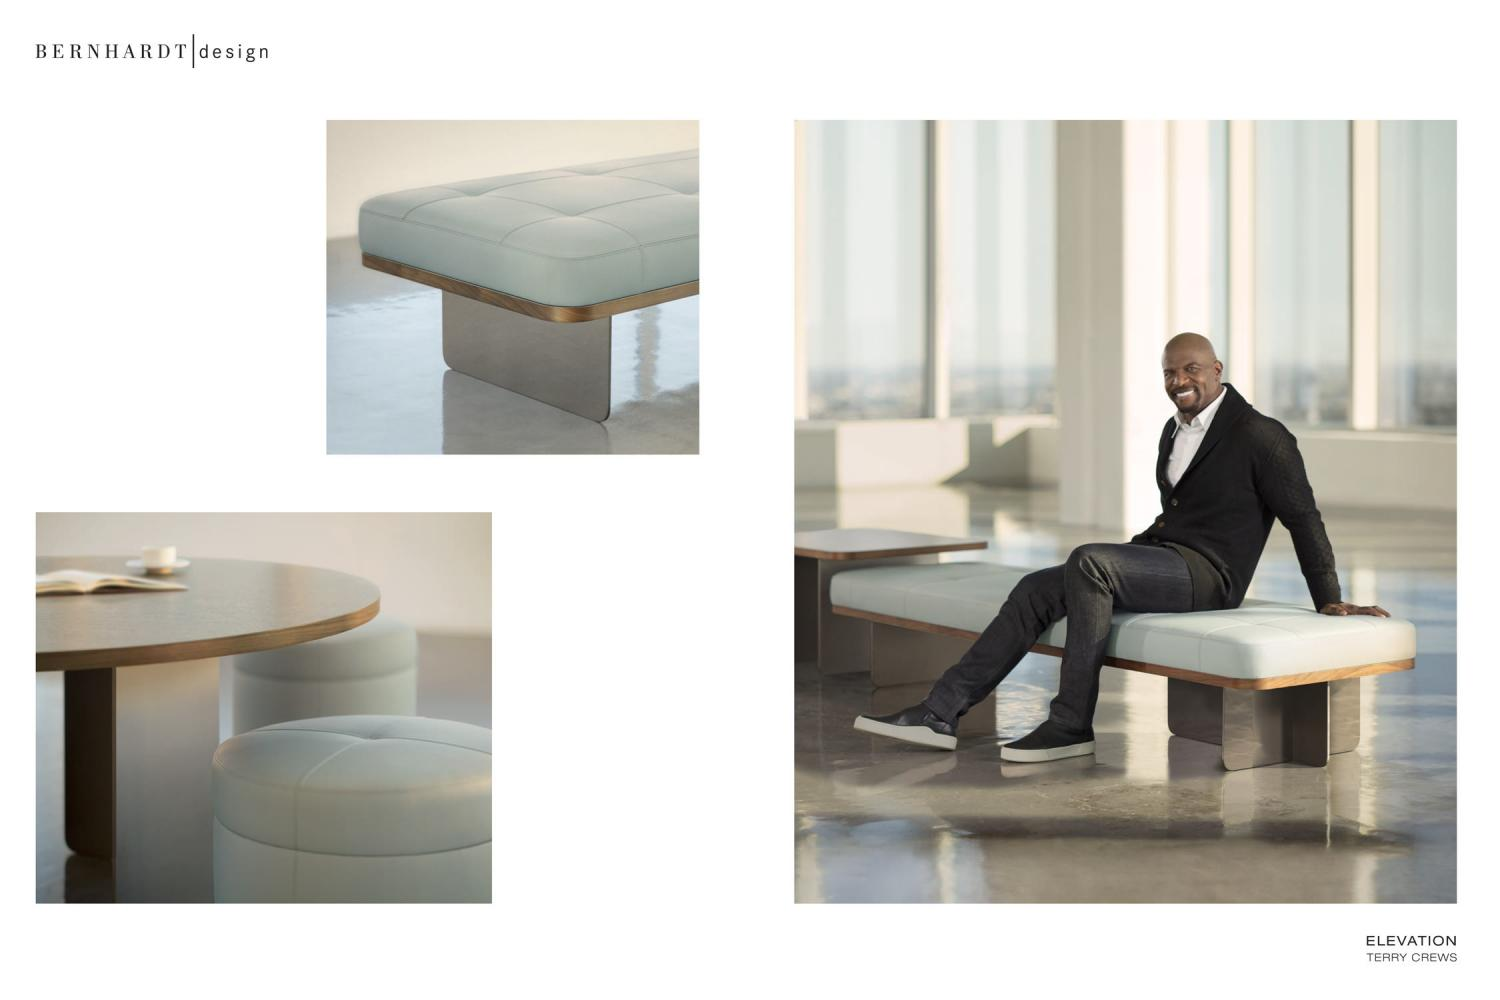 Bernhardt Design - Terry Crews